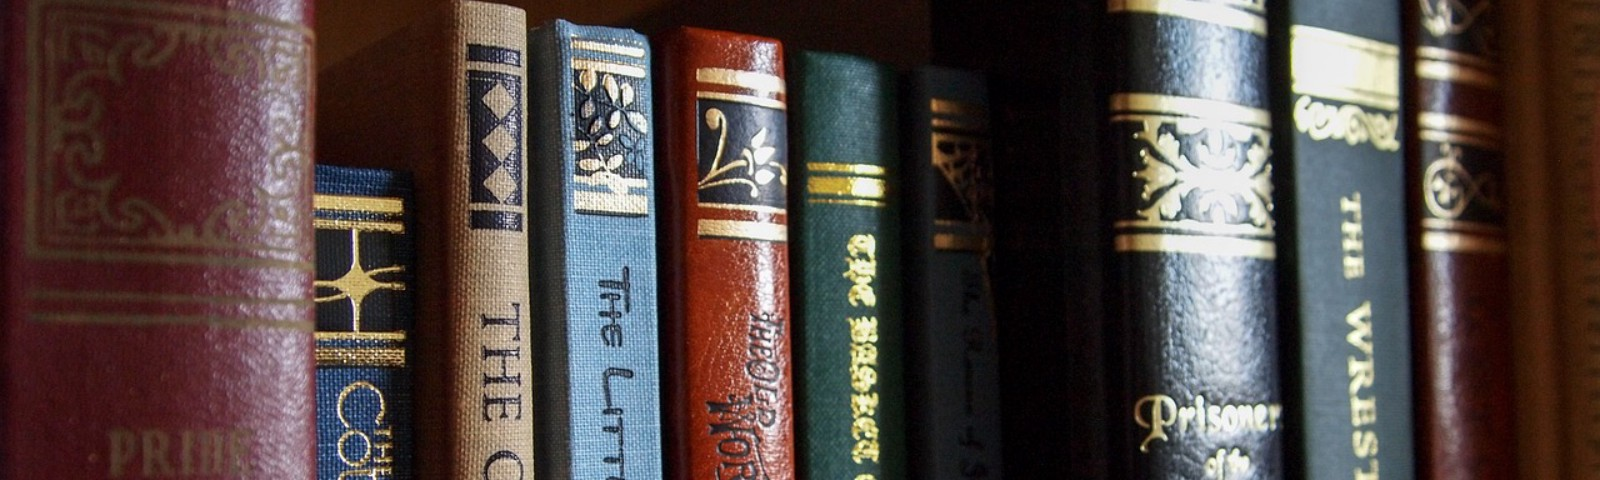 A close up of well kept older hardback books on a bookshelf.